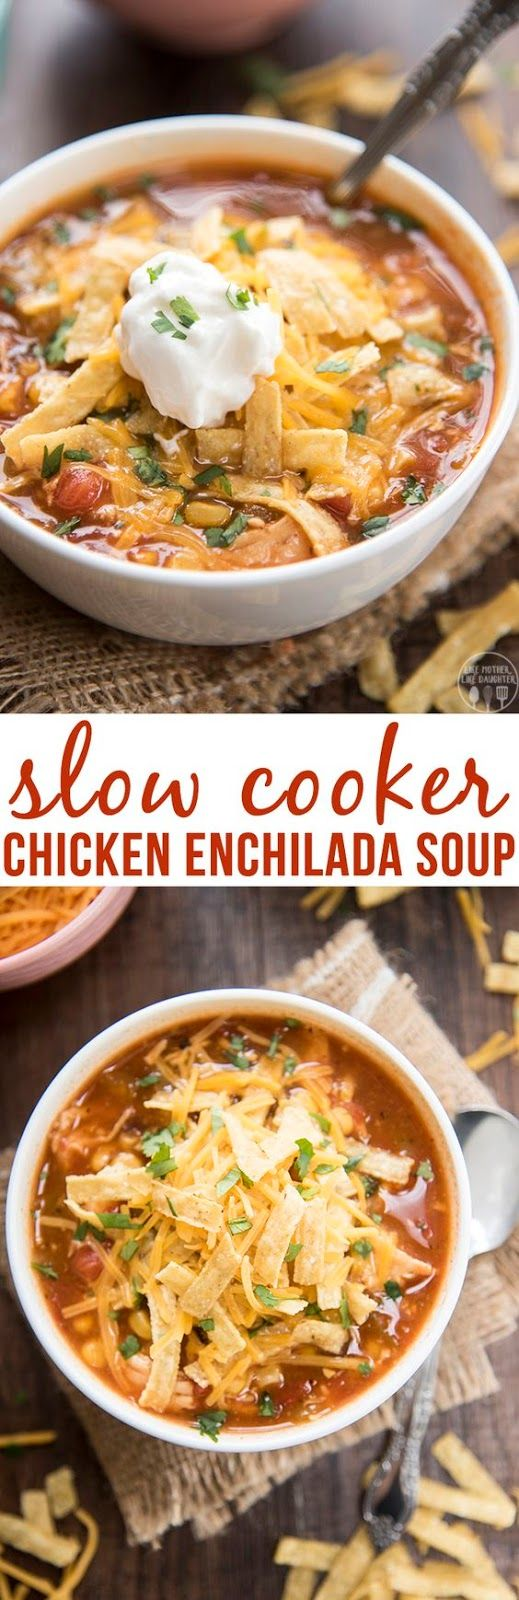 INGREDIENTS   2 large chicken breasts, raw and thawed   1 10oz can red enchilada sauce   1 14oz can black beans, rinsed and drained   1...